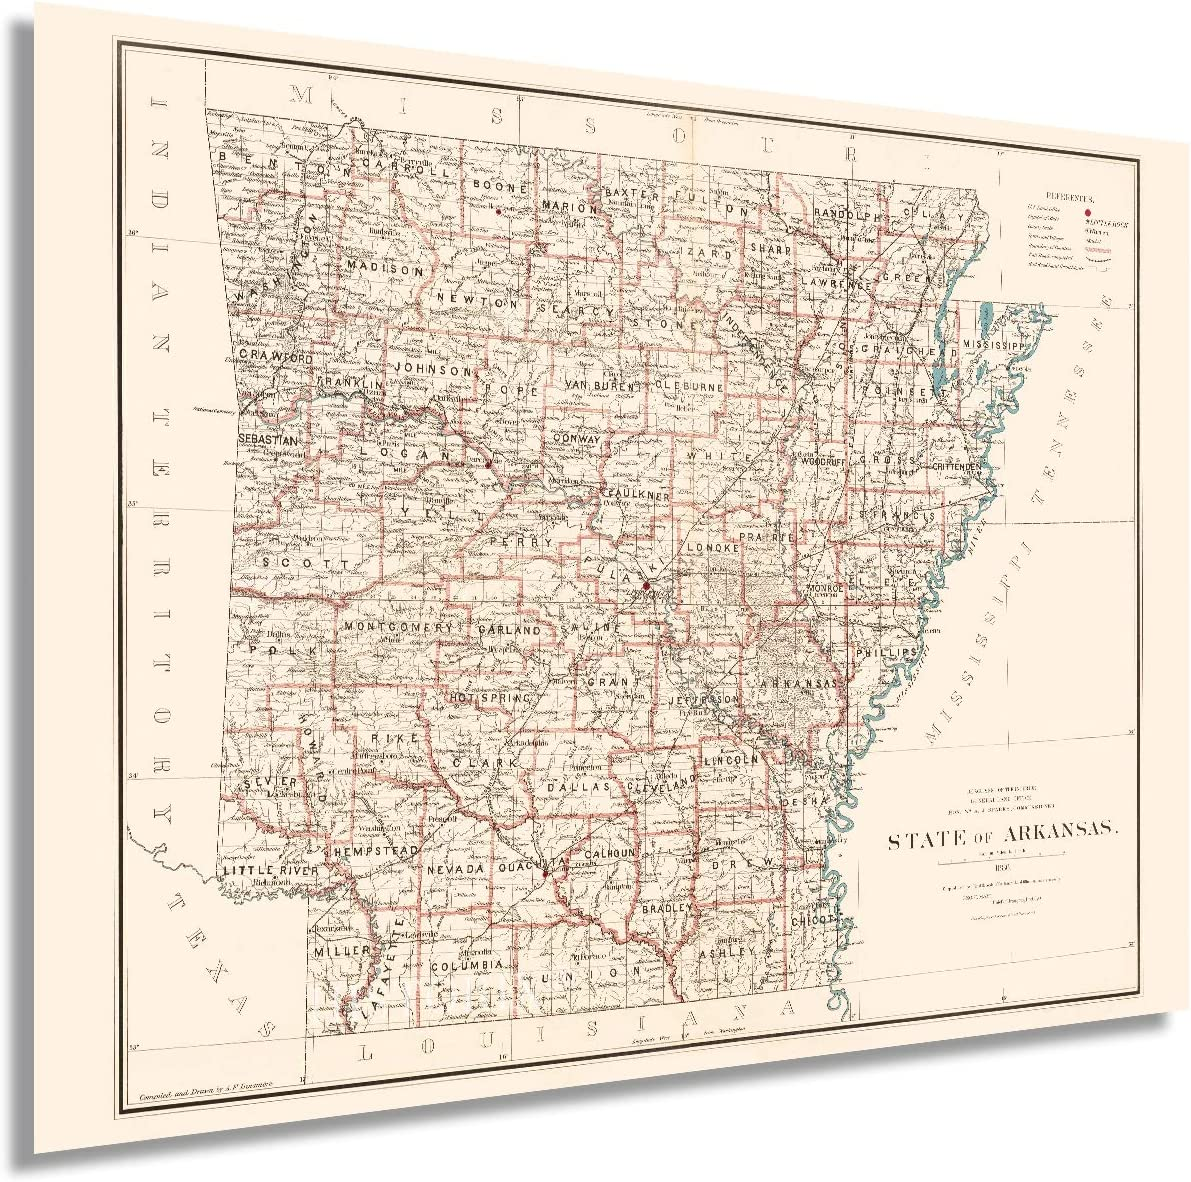 HISTORIX Vintage 1886 Arkansas State 18x24 Over item handling Inch Map Animer and price revision - S